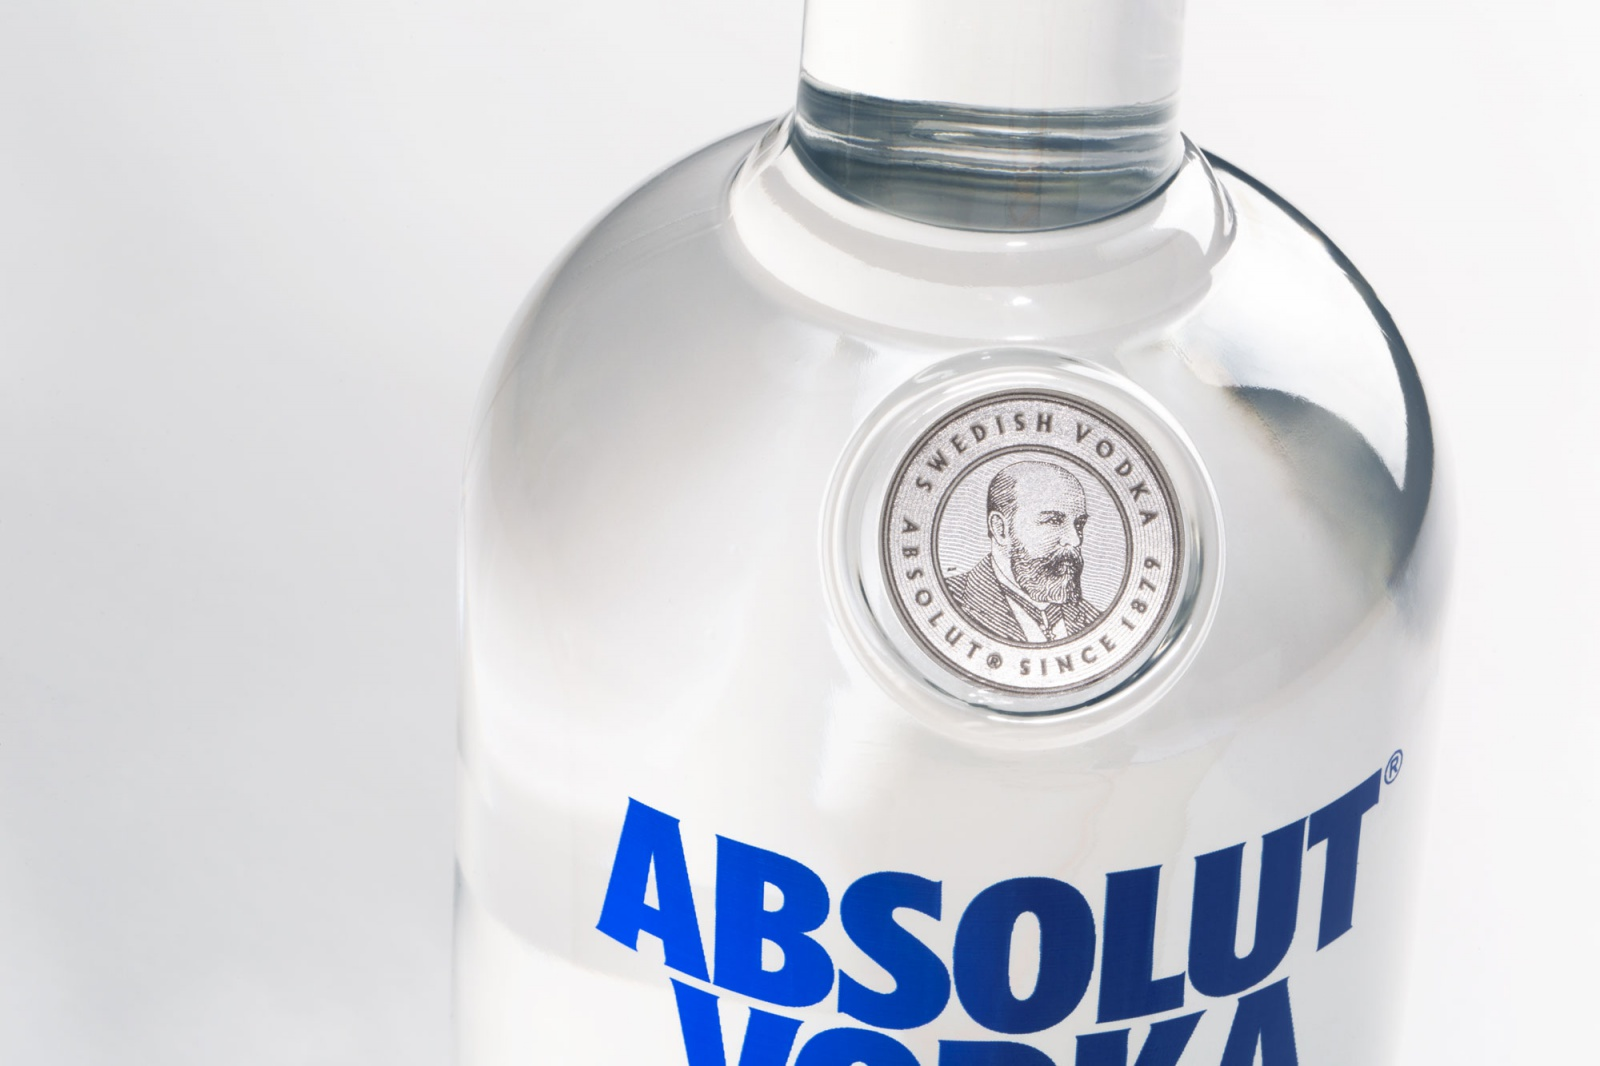 absolut vodka largest brand of alcoholic